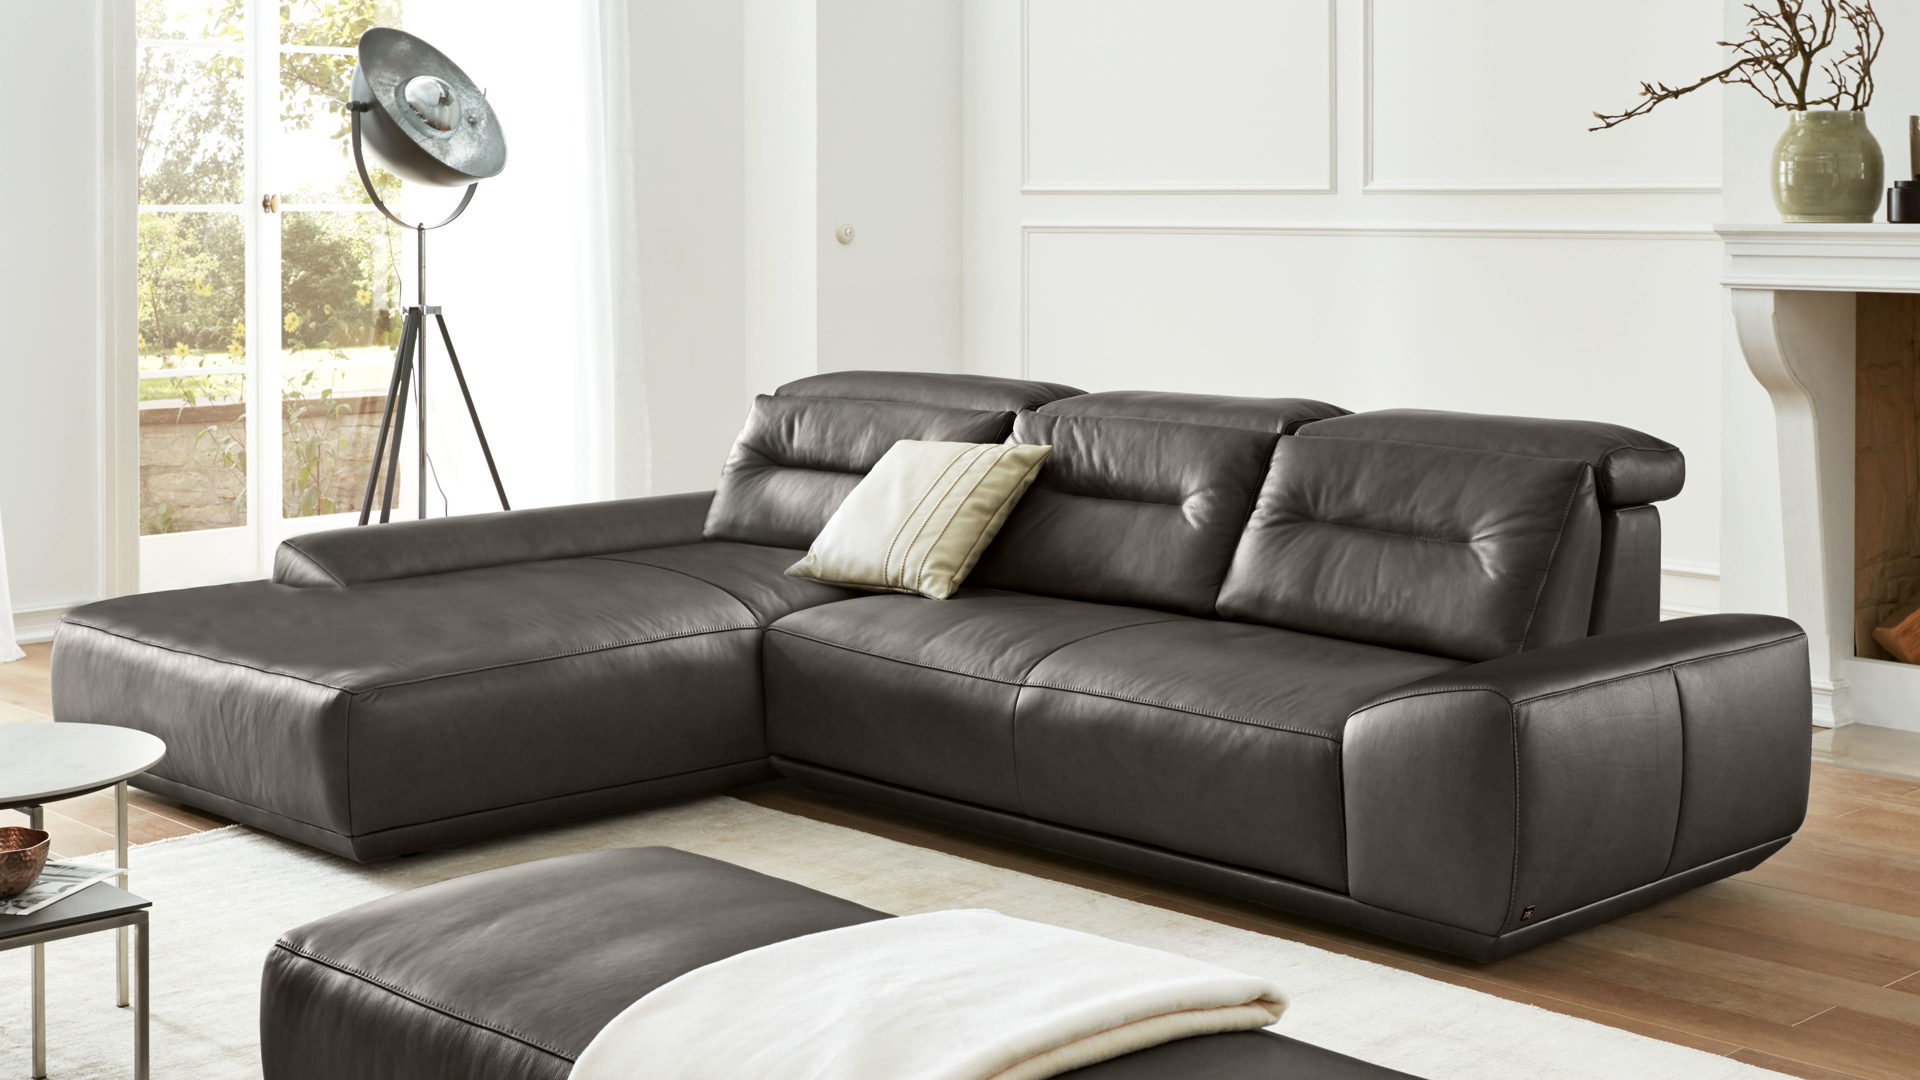 Ecksofa Interliving aus Leder in Grau Interliving Sofa Serie 4000 – Eckkombination graphitfarbenes Leder Z39.94 – Schenkelmaß ca. 209 x 310 cm